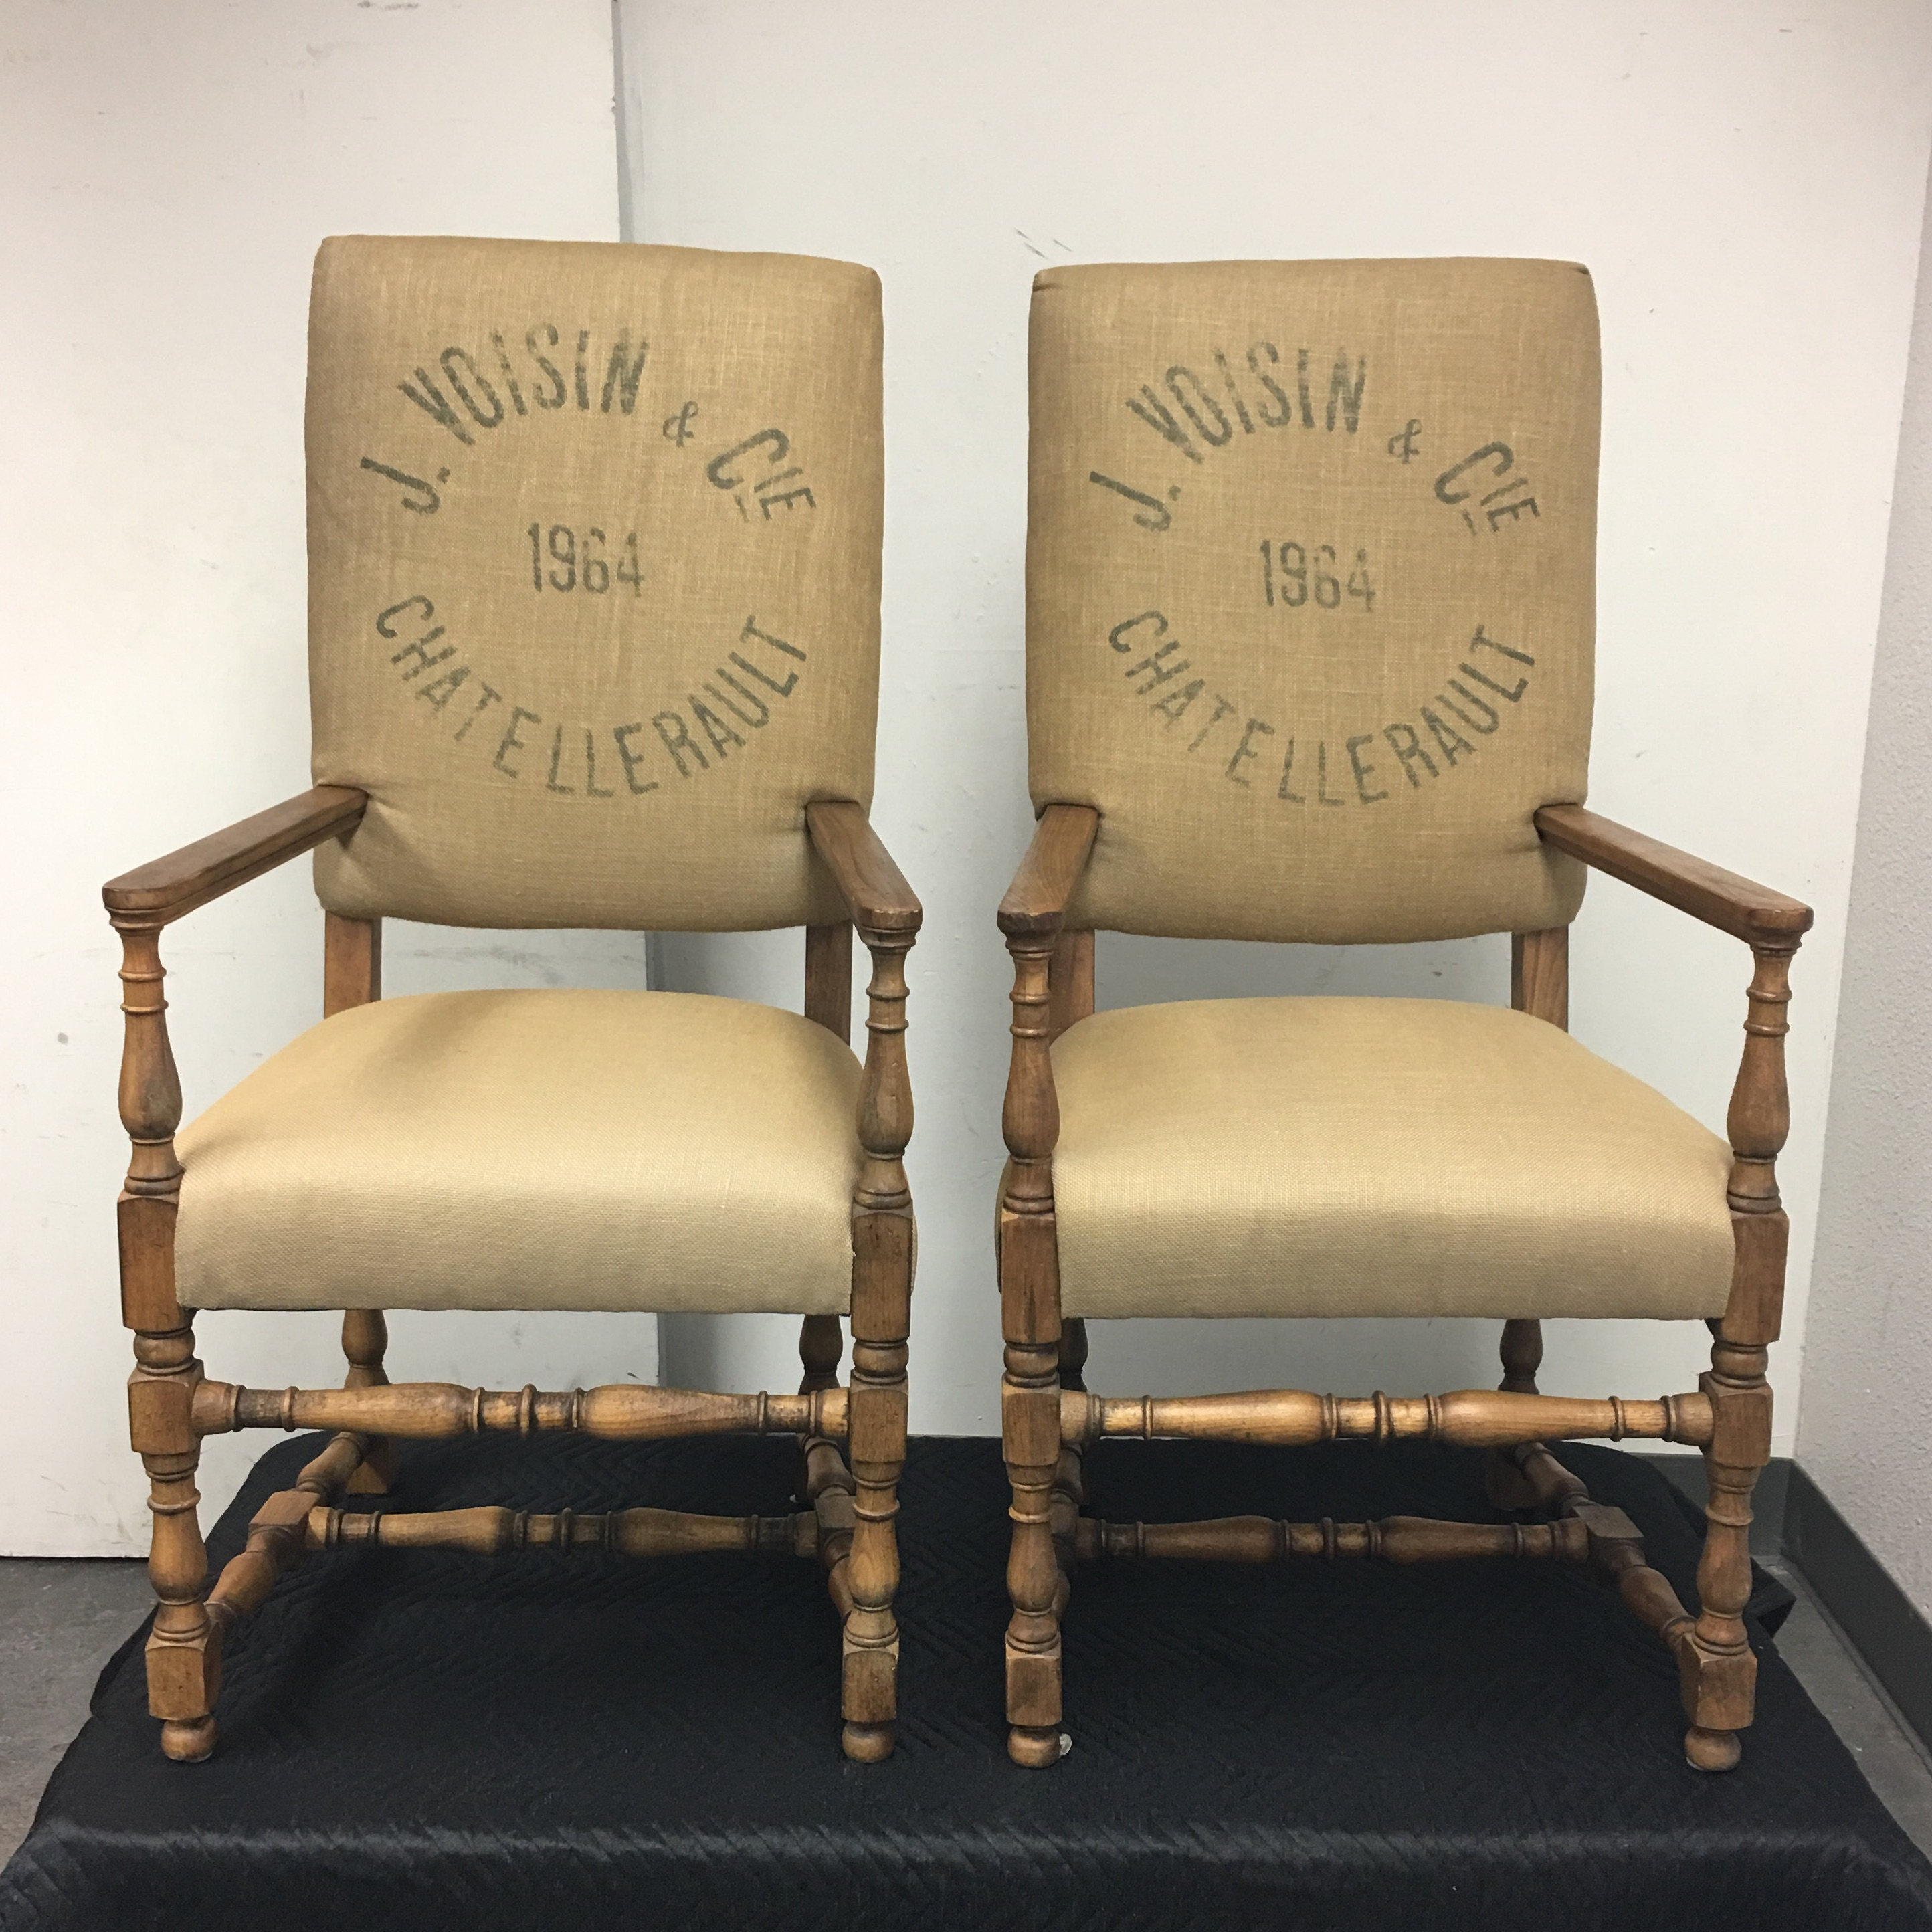 restoration hardware english baroque printed chairs a pair image 2 of 8